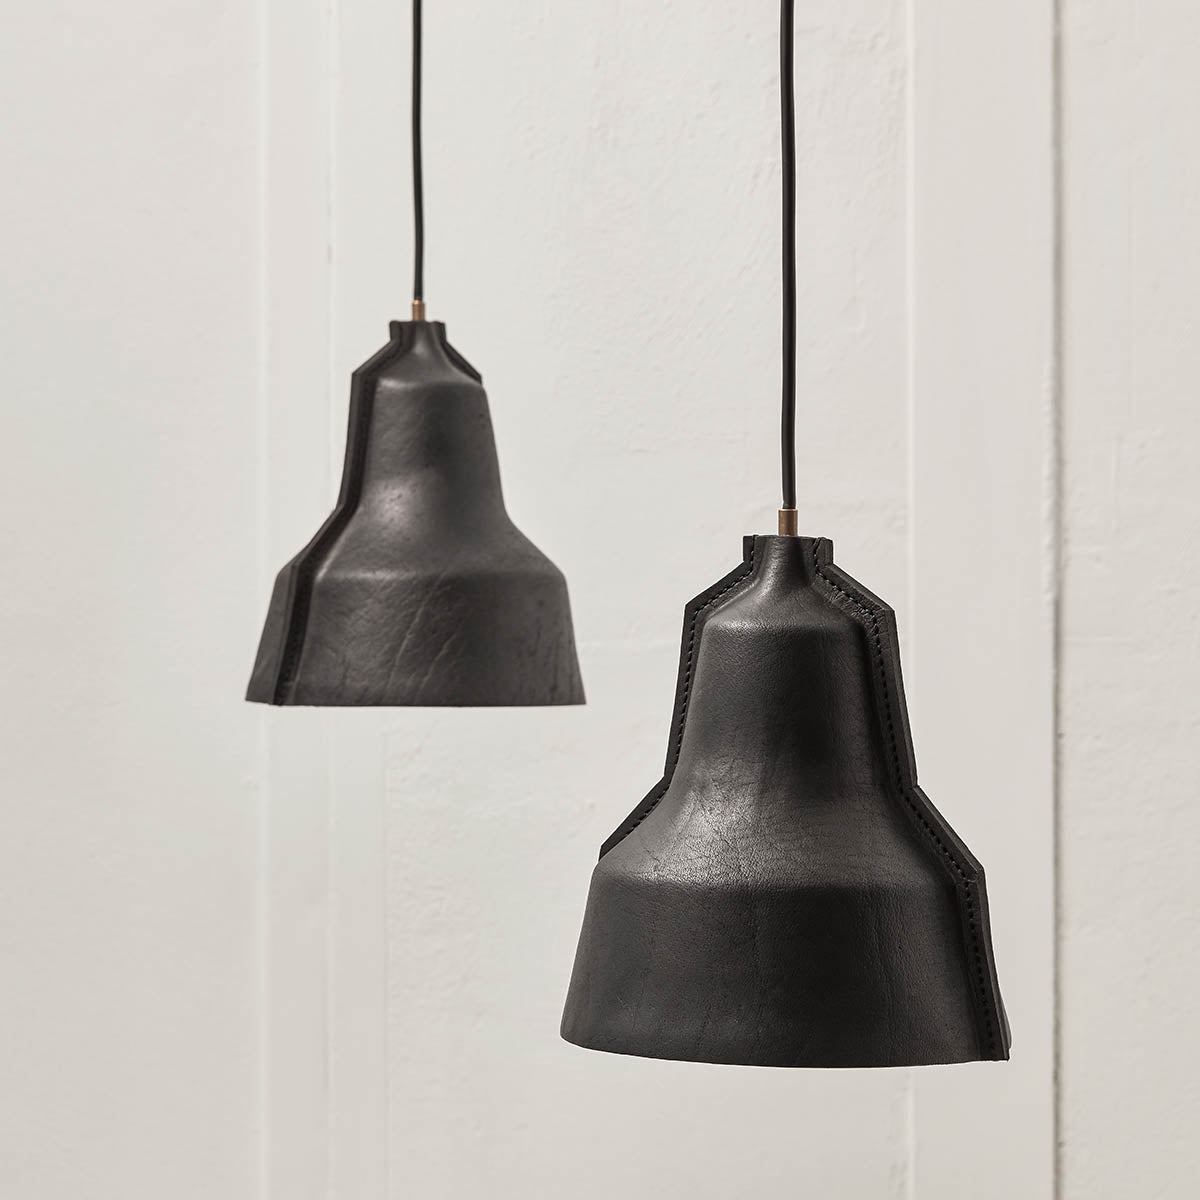 Hand Stitched Leather Lamp Shade